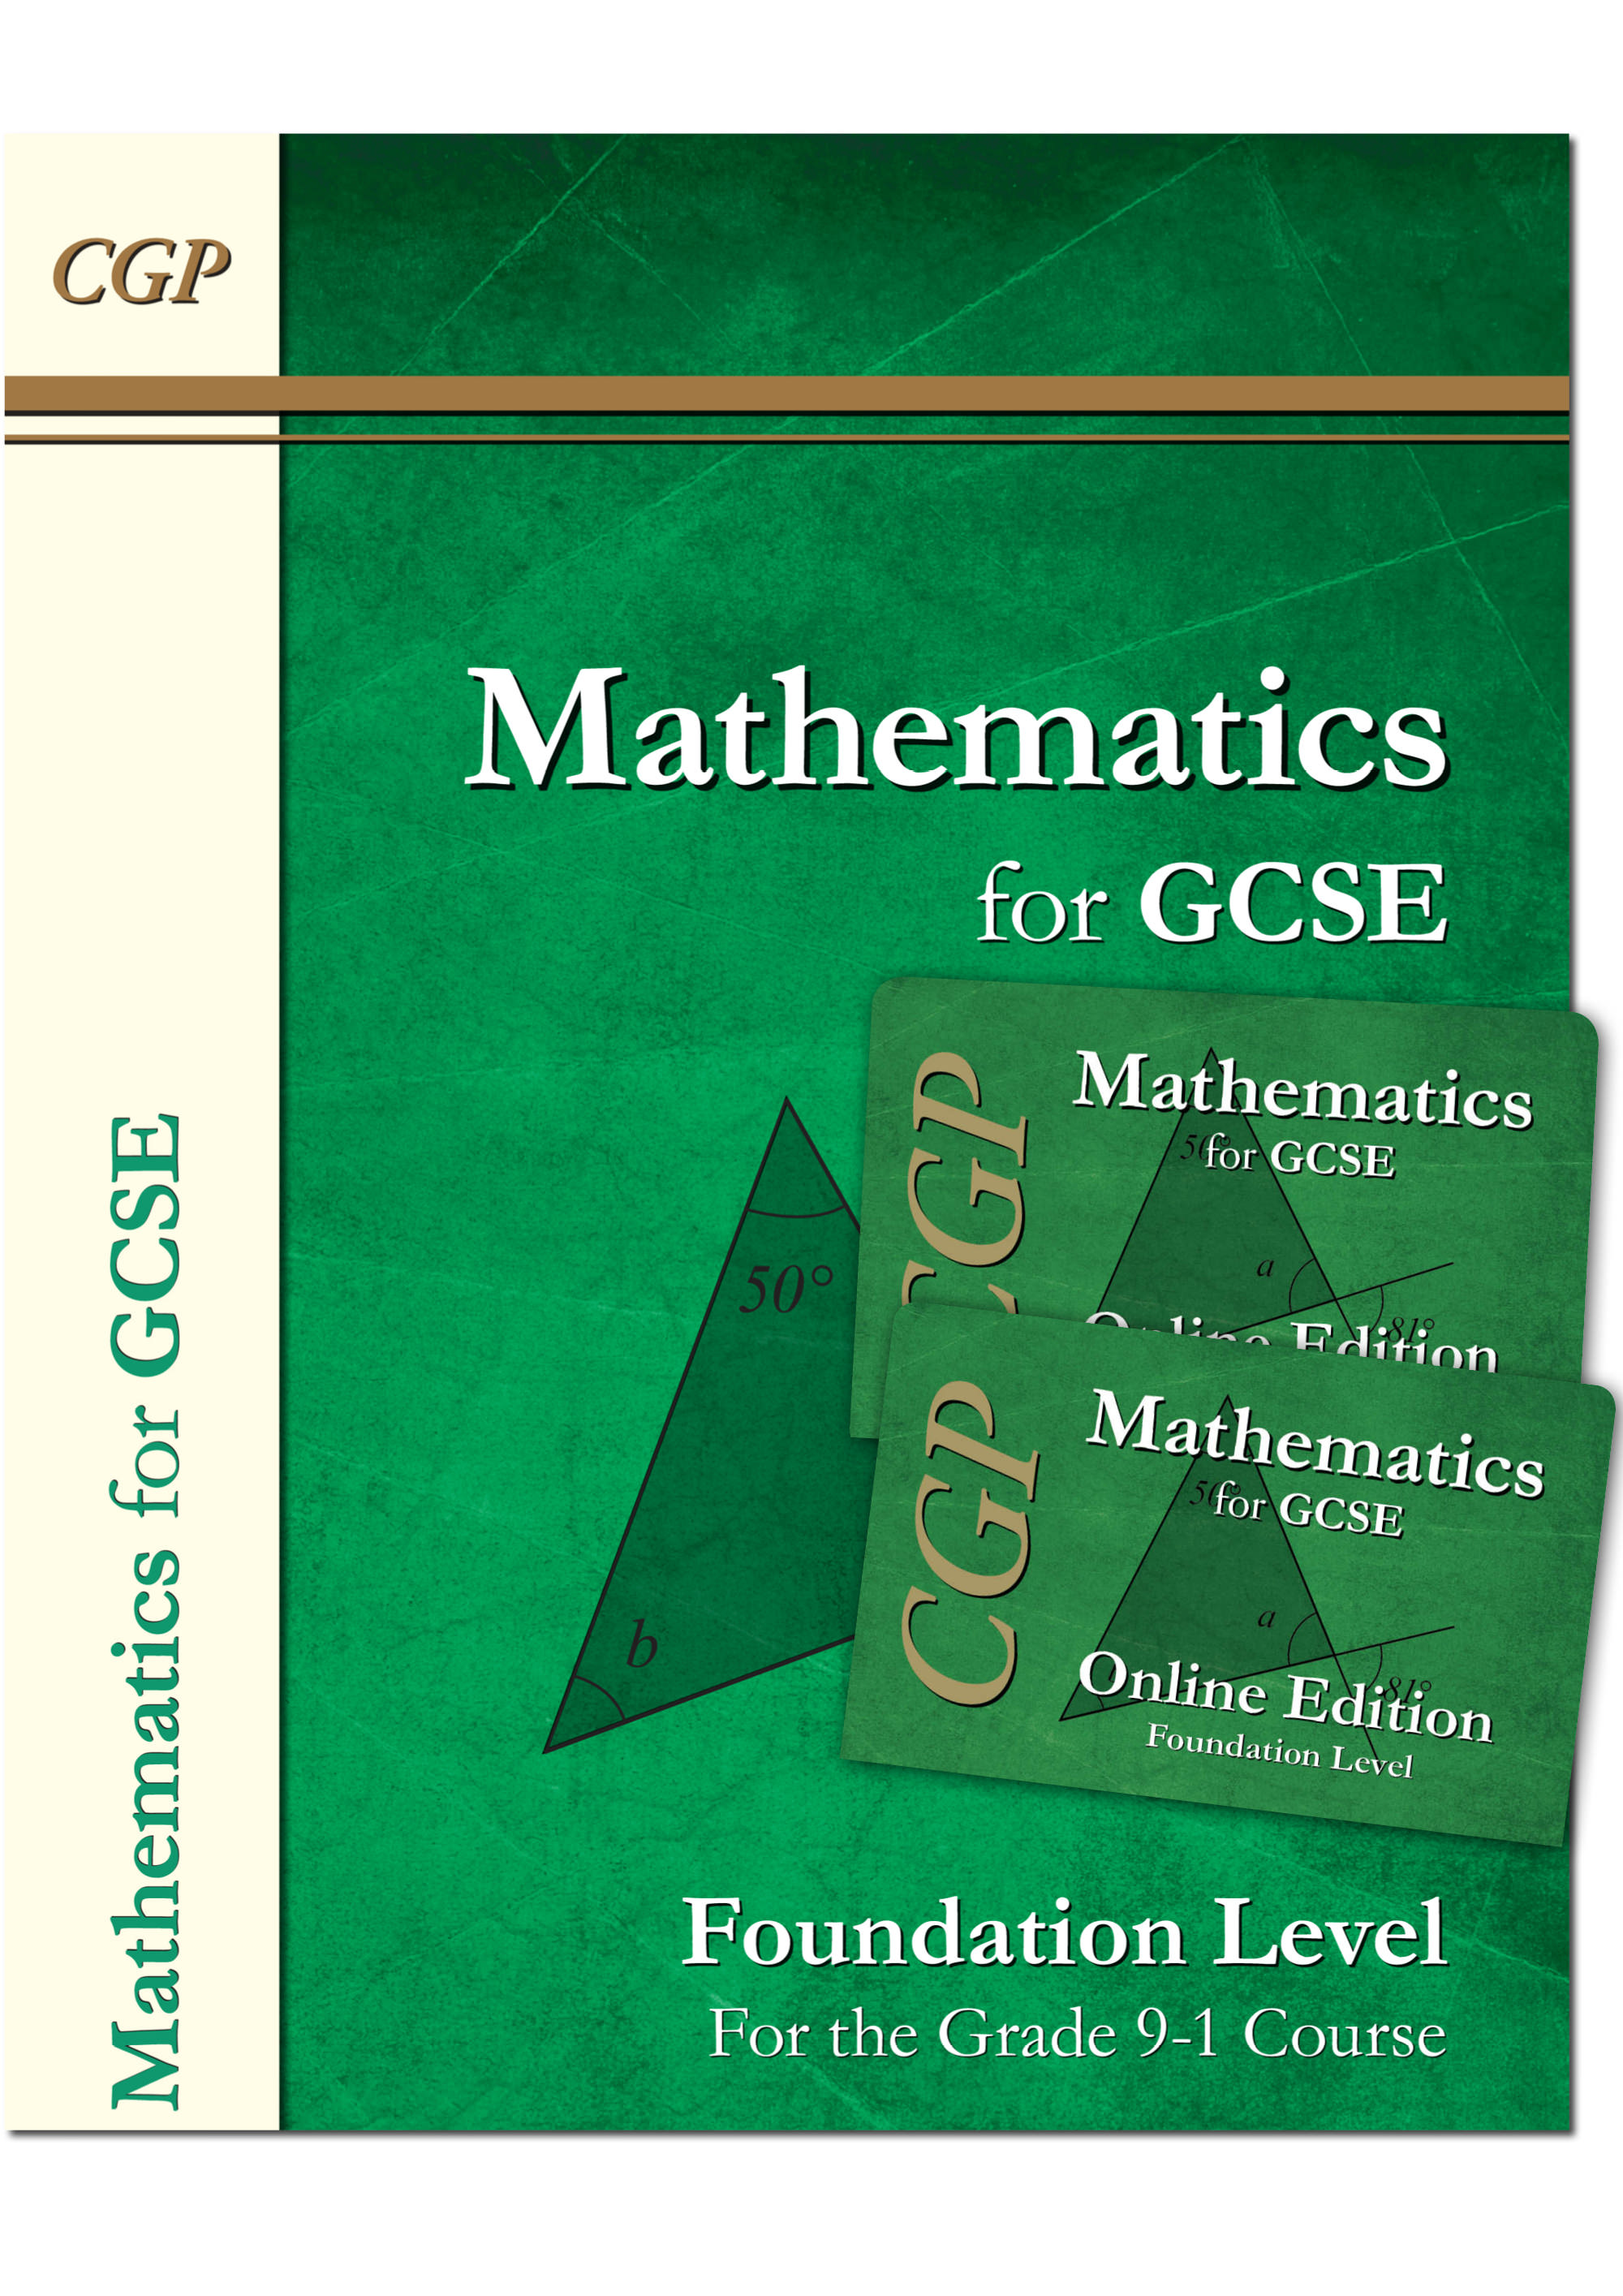 MFNB42 - Maths for GCSE Textbook: Foundn - incl 2 online editions with answers (for the Grade 9-1 Co